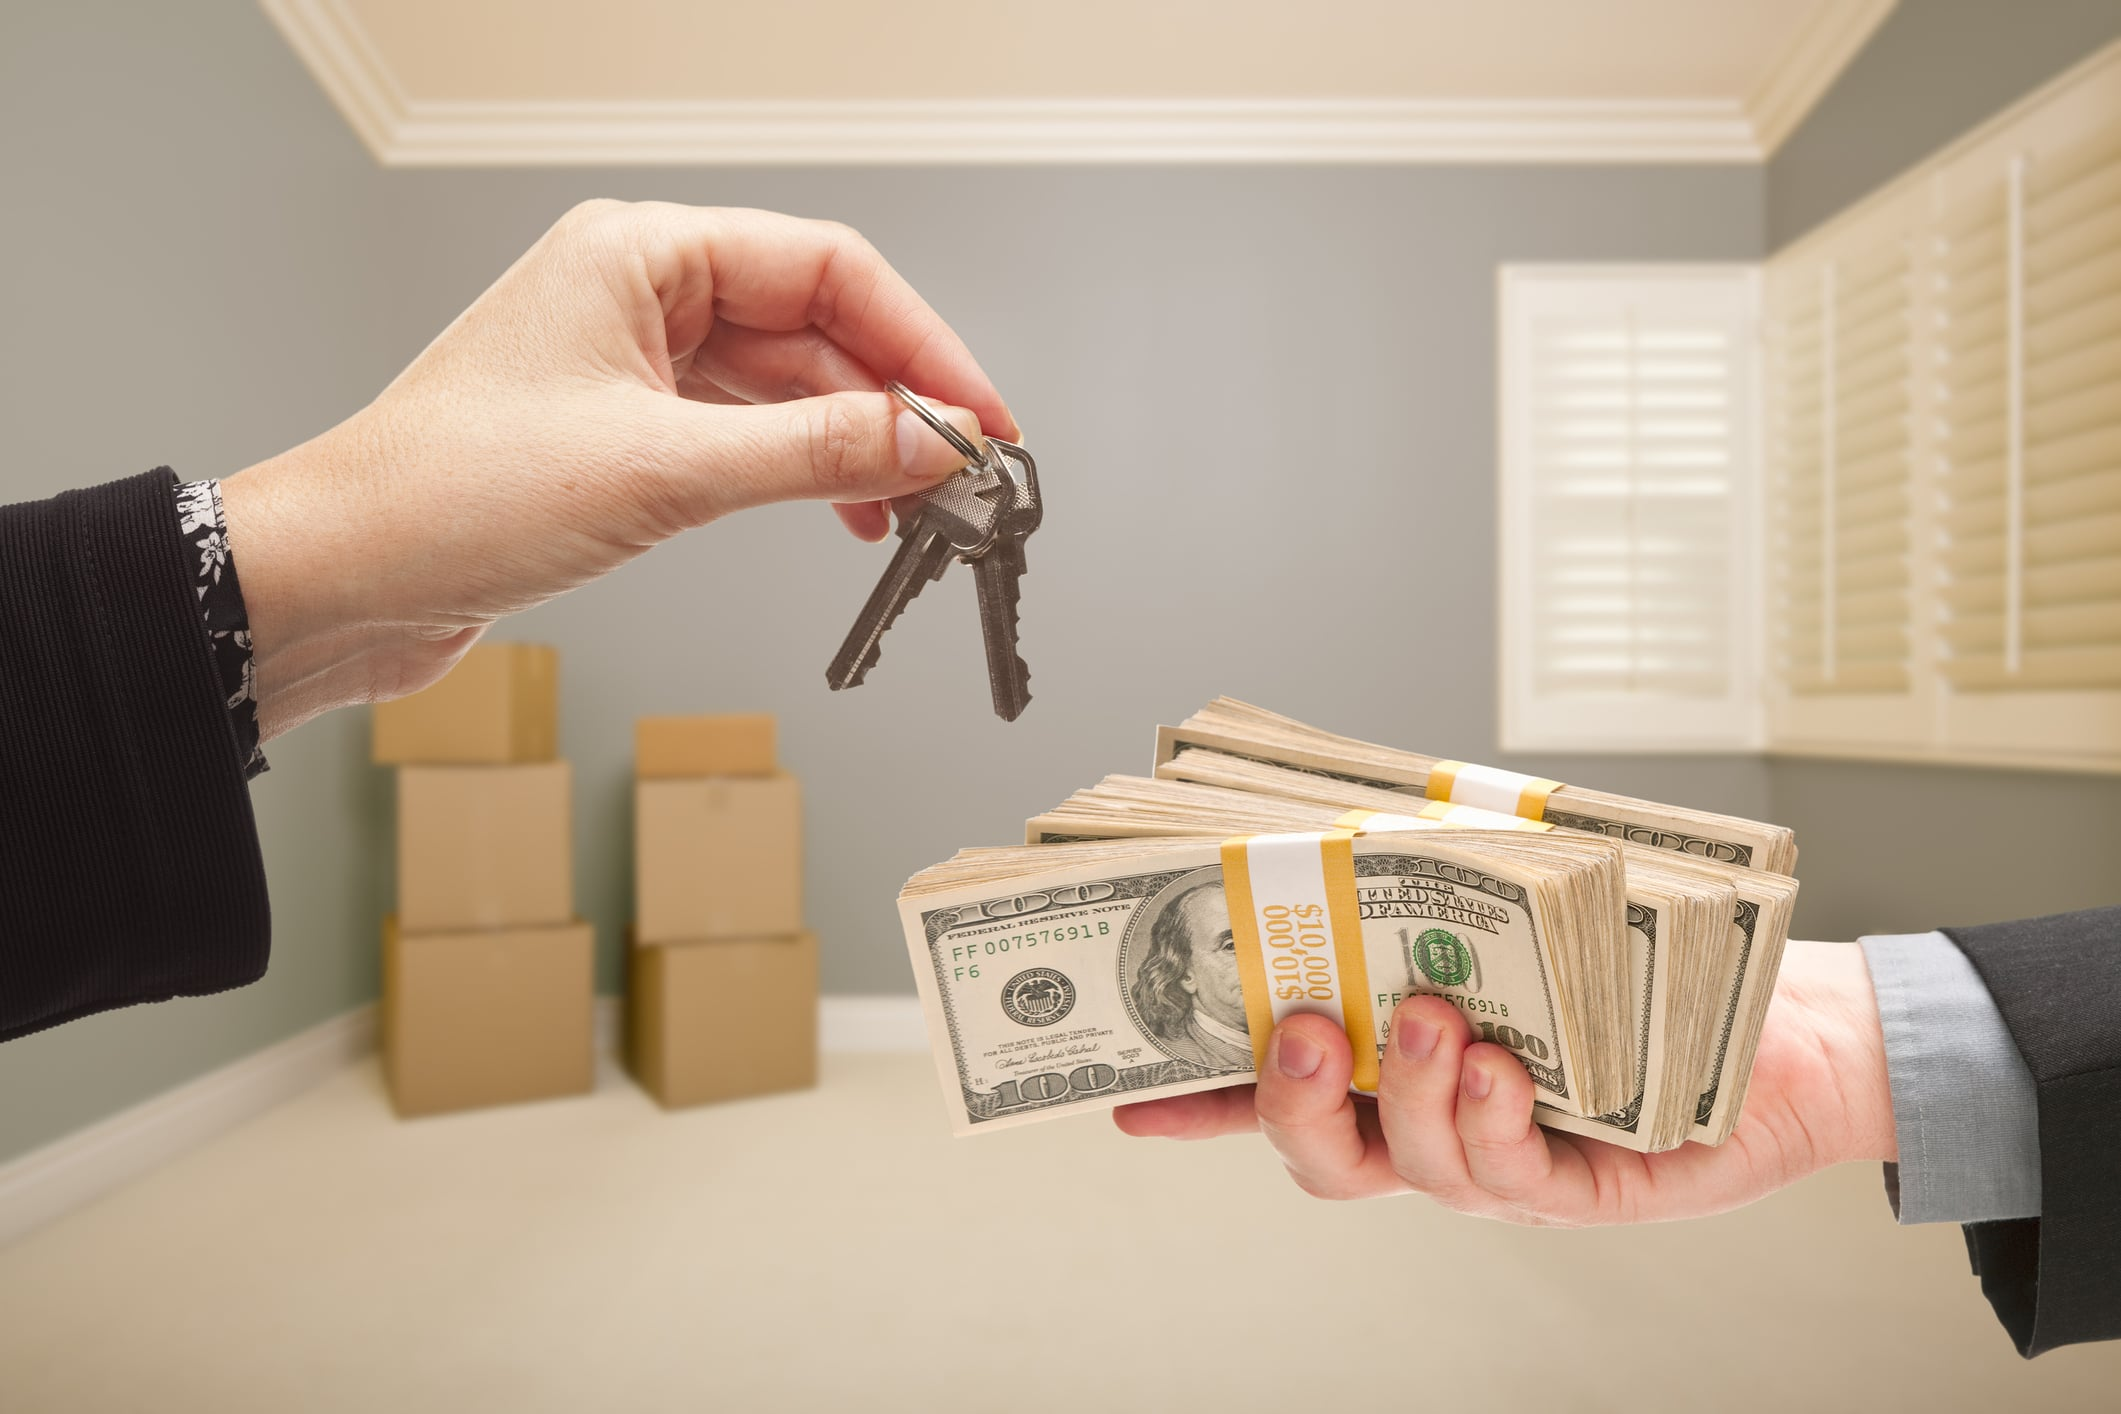 Man and Woman Handing Over Cash For House Keys Inside Empty Gray Room with Boxes.